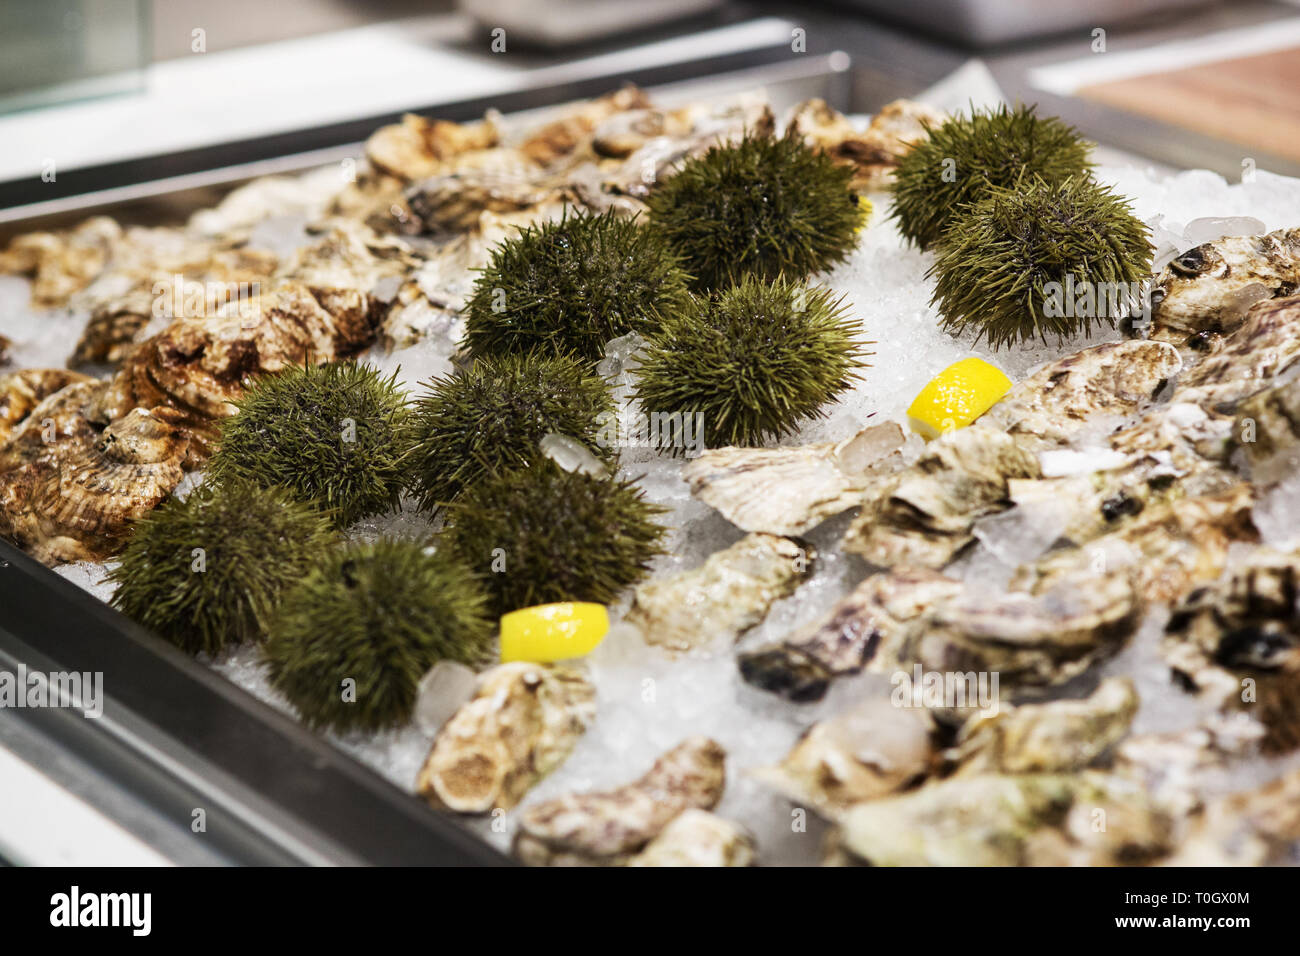 Fresh sea urchin and oysters for sale at a seafood market in Boston, Massachusetts, USA. - Stock Image